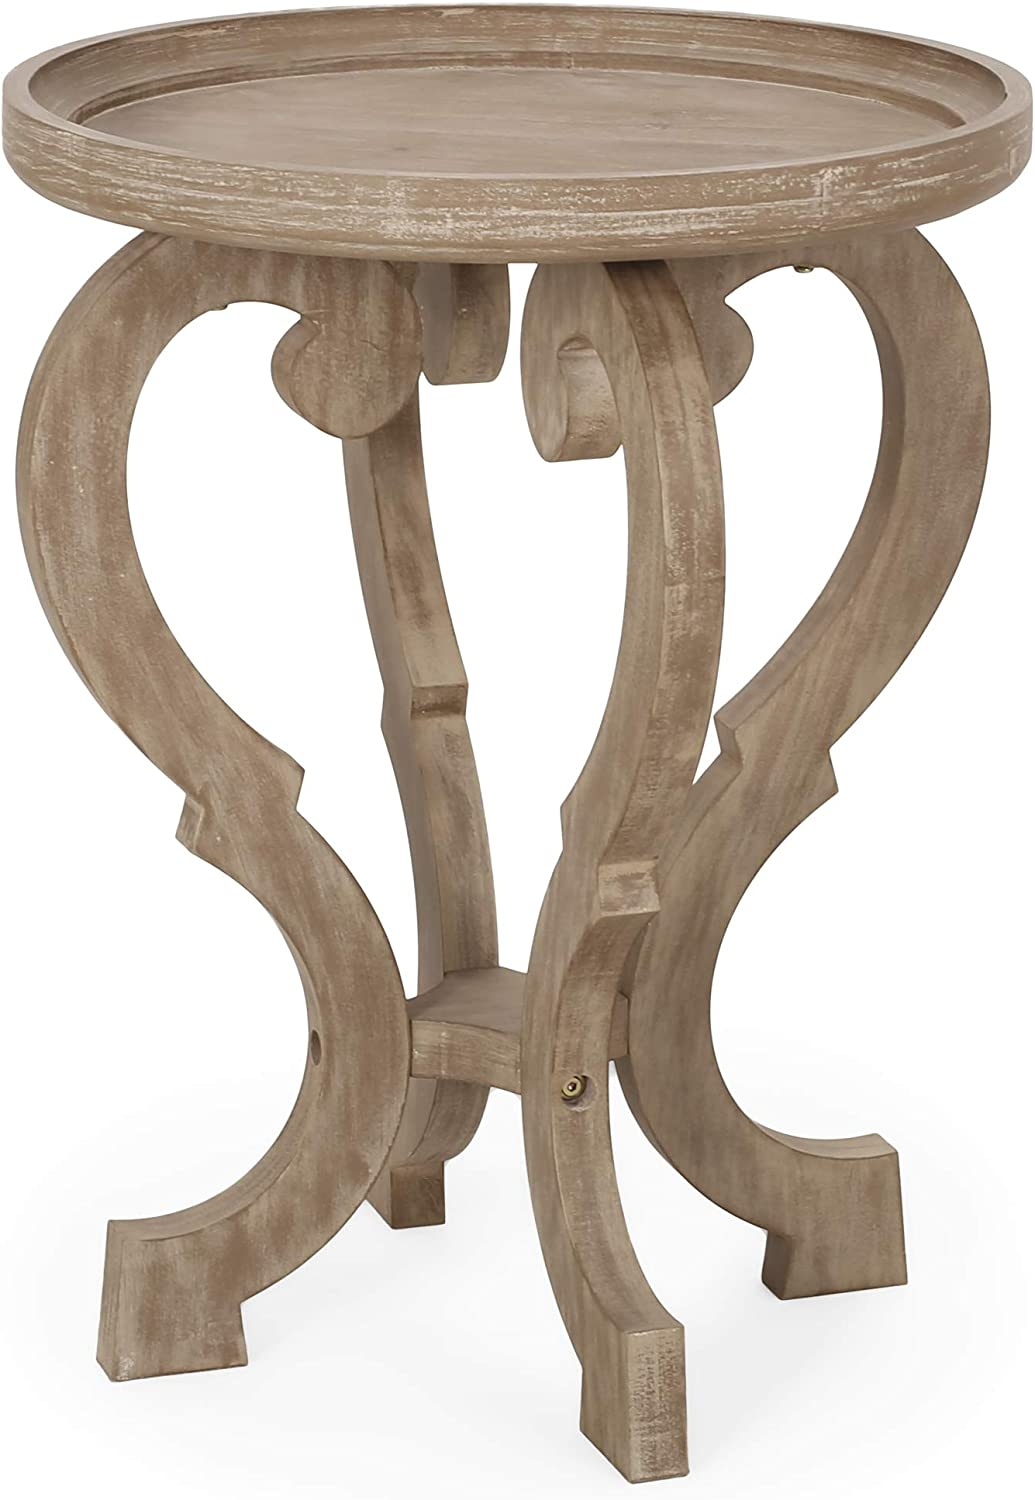 Christopher Knight Home 313192 Eleanor French Country Accent Table with Round Top, Natural